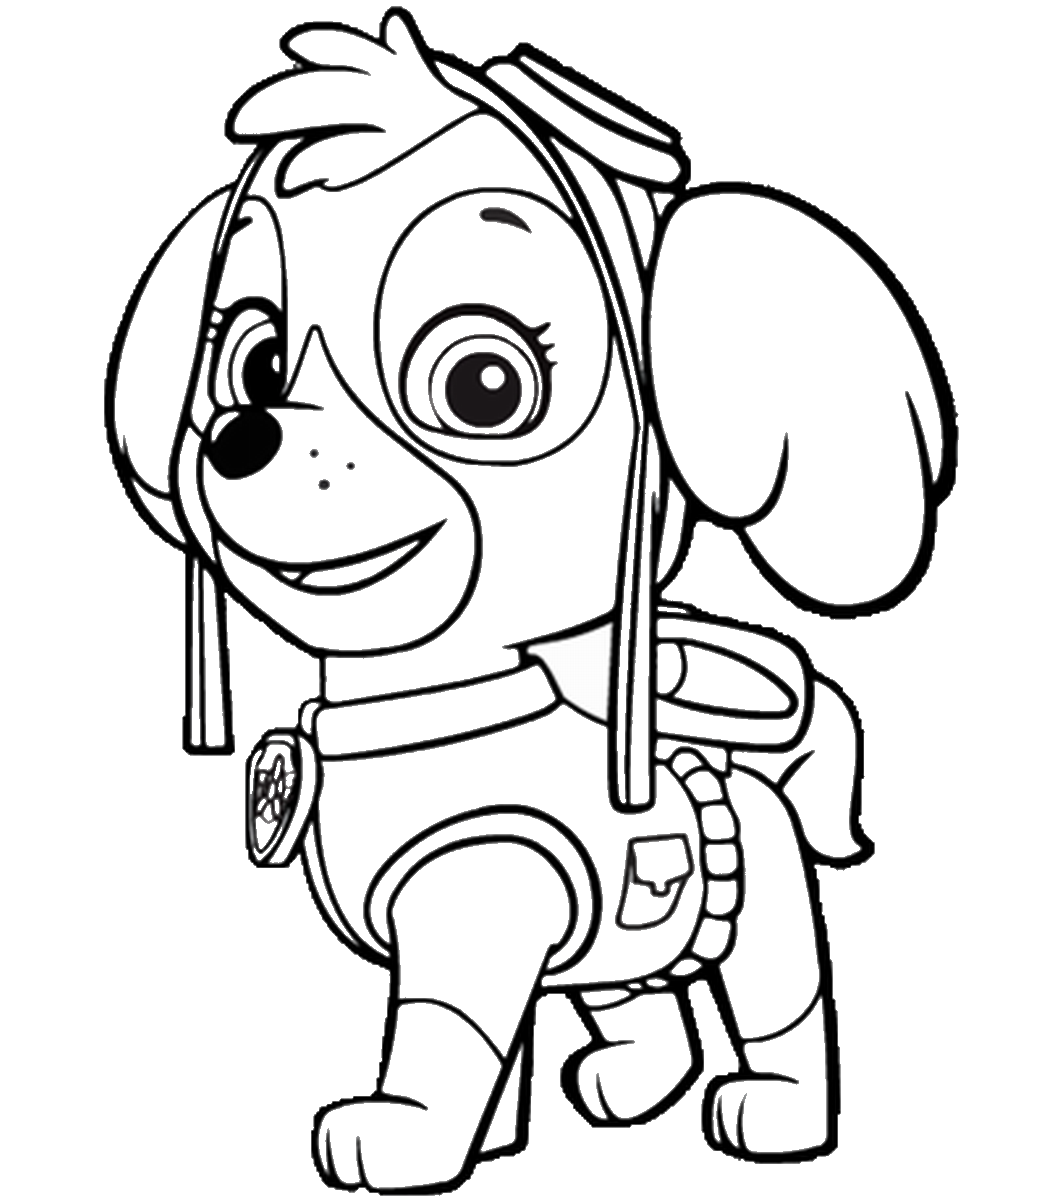 Paw Patrol Coloring Pages : Free coloring pages of paw patrol symbol